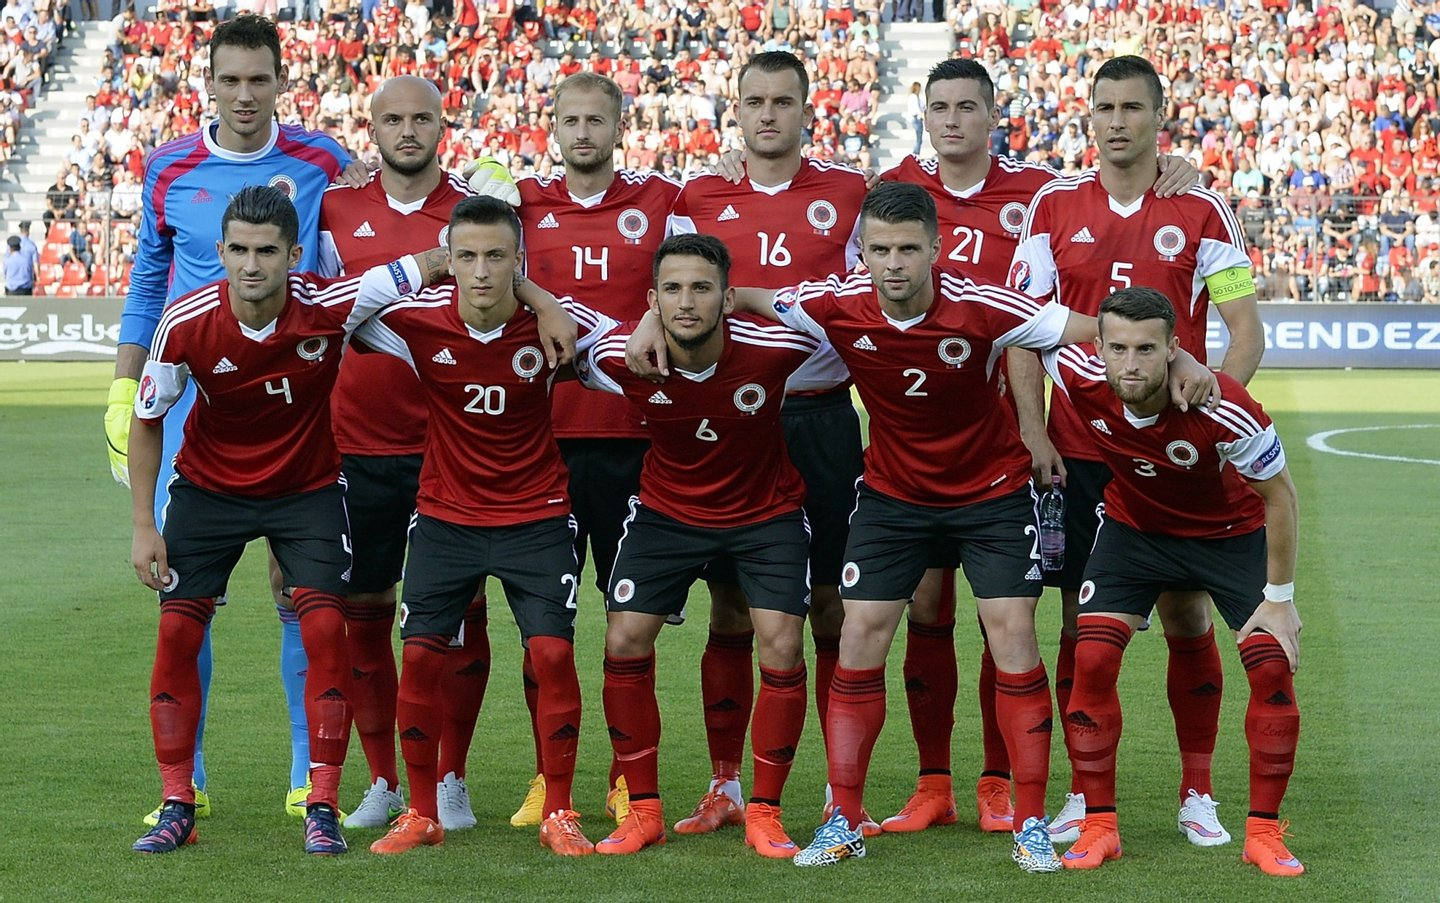 (FromL, 1st row) Albania's midfielder Elseid Hysaj, Albania's Ergys Kace, Albania's midfielder Naser Aliji, Albania's defender Andi Lila, Albania's defender Ermir Lenjani, (FromL, second row) Albania's goalkeeper Etrit Berisha, Albania's midfielder Arlind Ajeti, Albania's Migjen Basha, Albania's Sokol Cikalleshi, Albania's Odise Roshi, and Albania's midfielder Lorik Cana pose prior to a friendly football match Albania vs France on June 13, 2015 in Elbasan, outside Tirana. AFP PHOTO / LOIC VENANCE (Photo credit should read LOIC VENANCE/AFP/Getty Images)